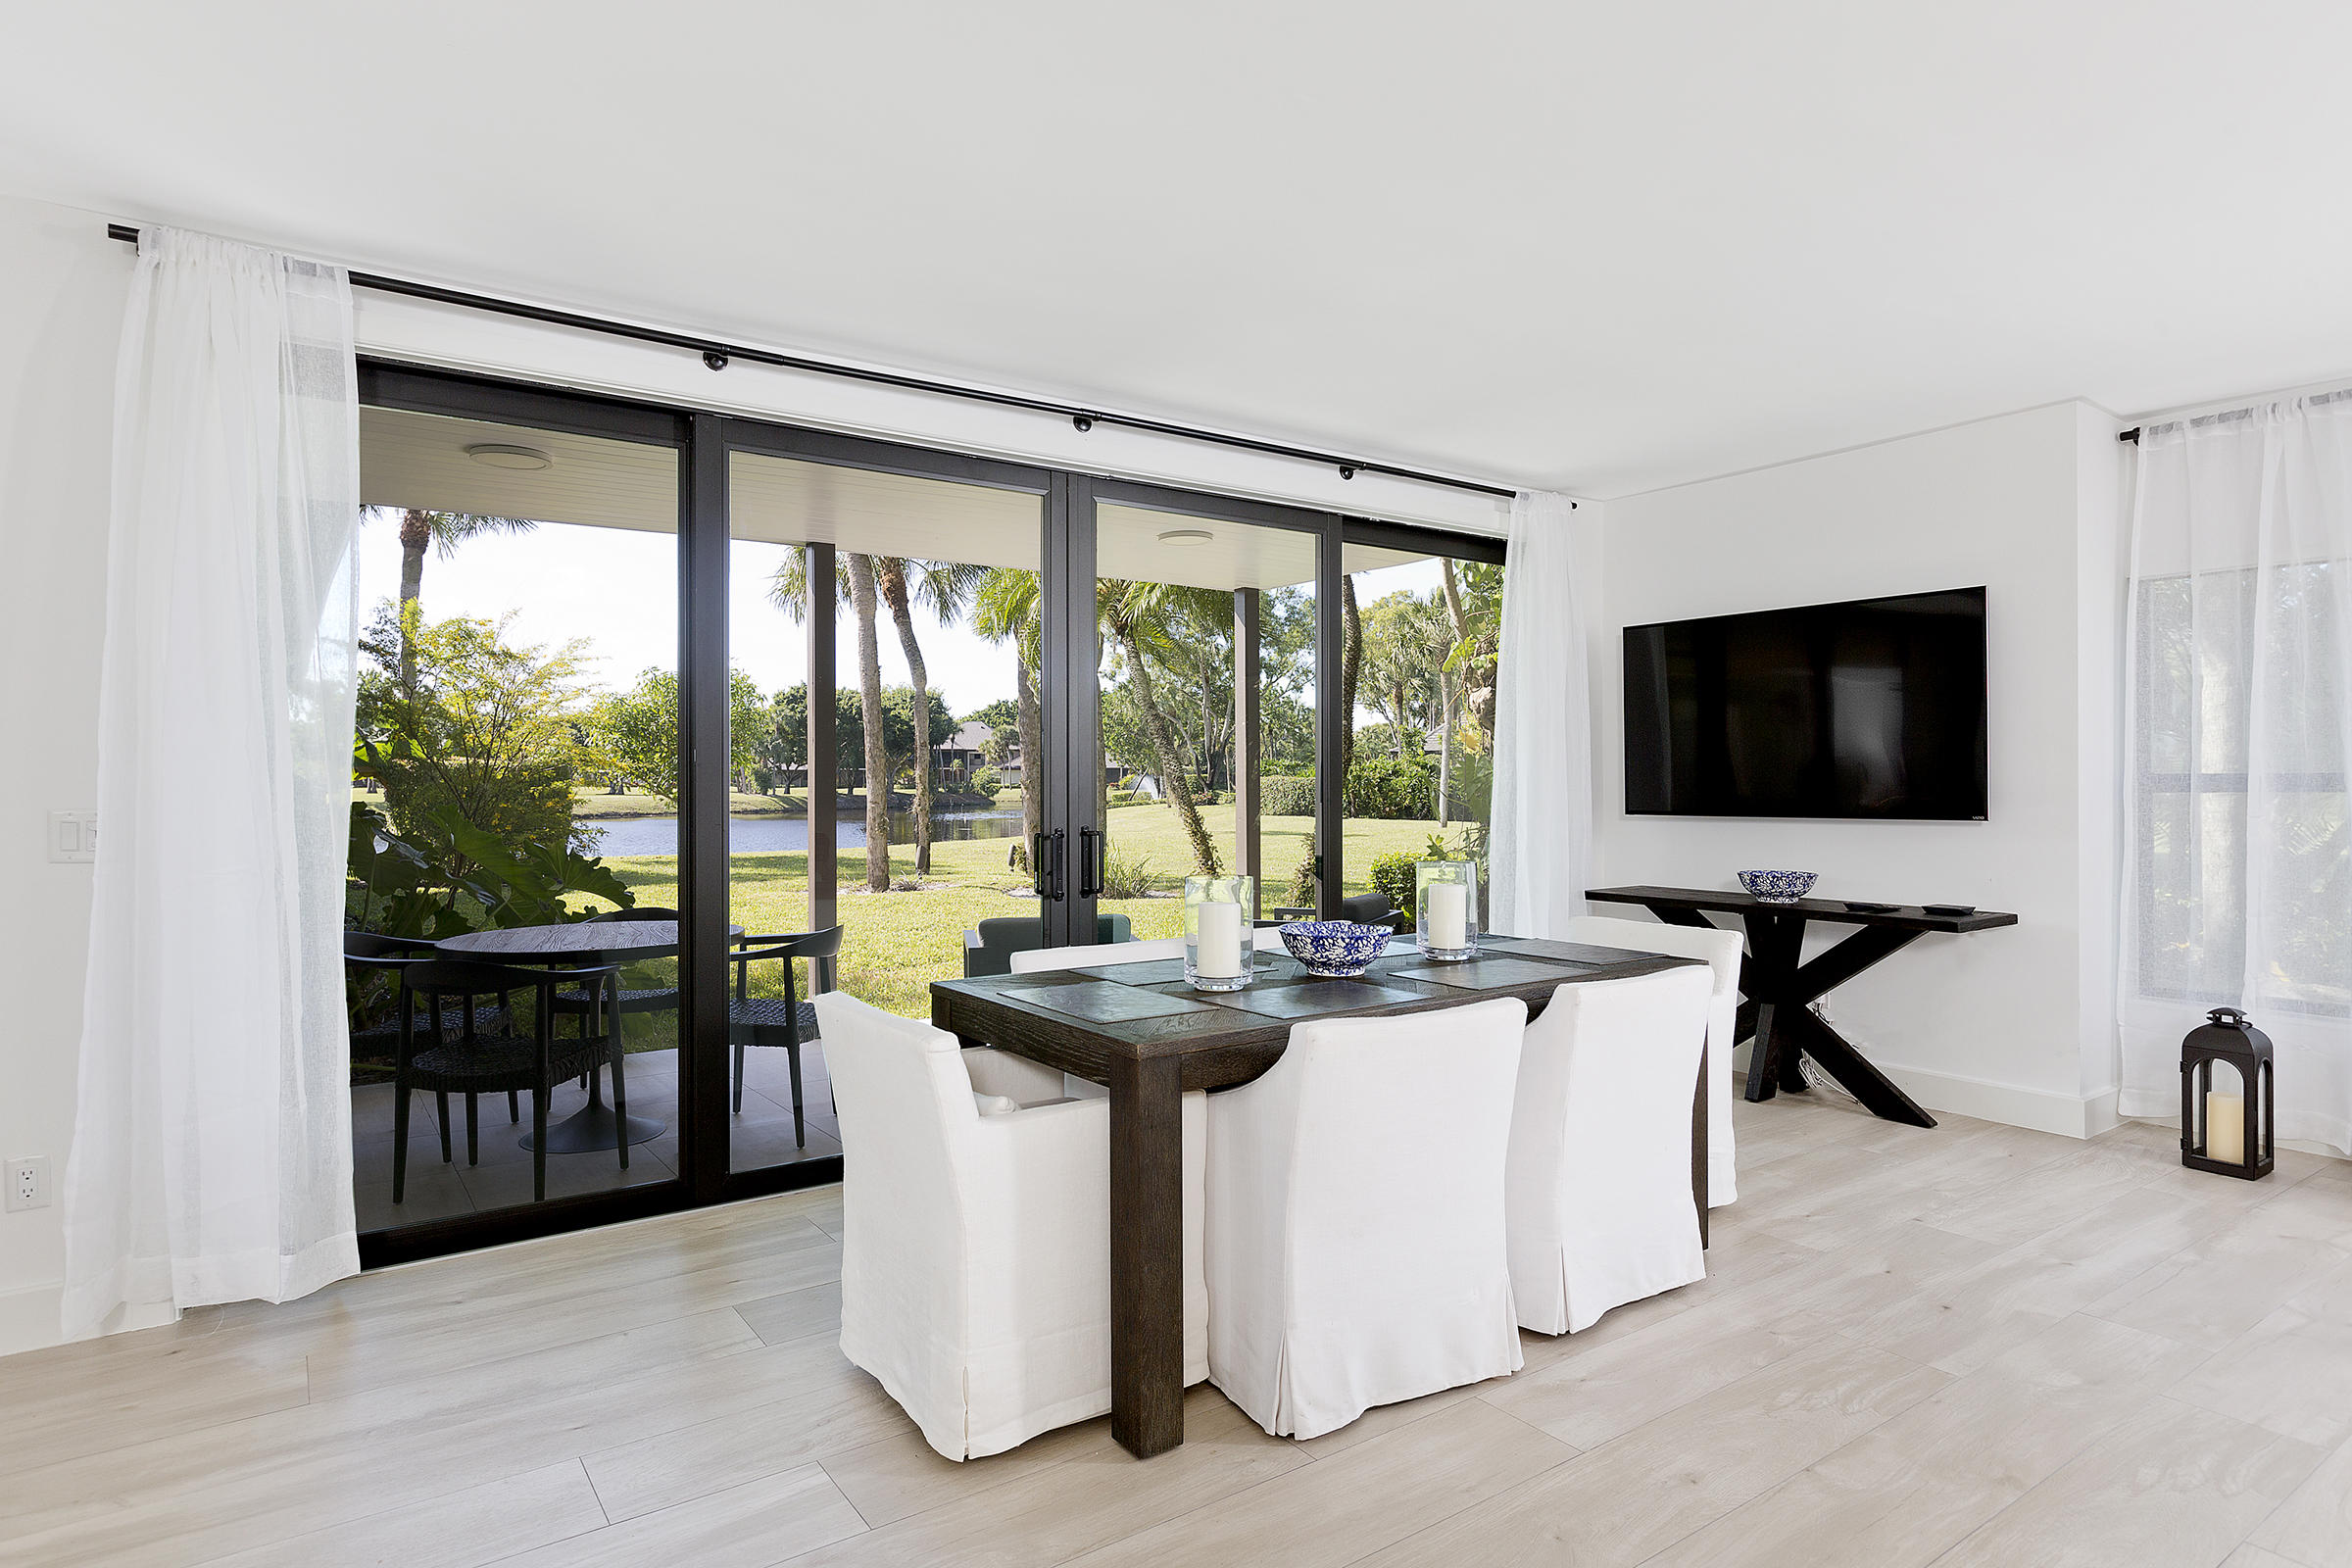 15_Dining_View